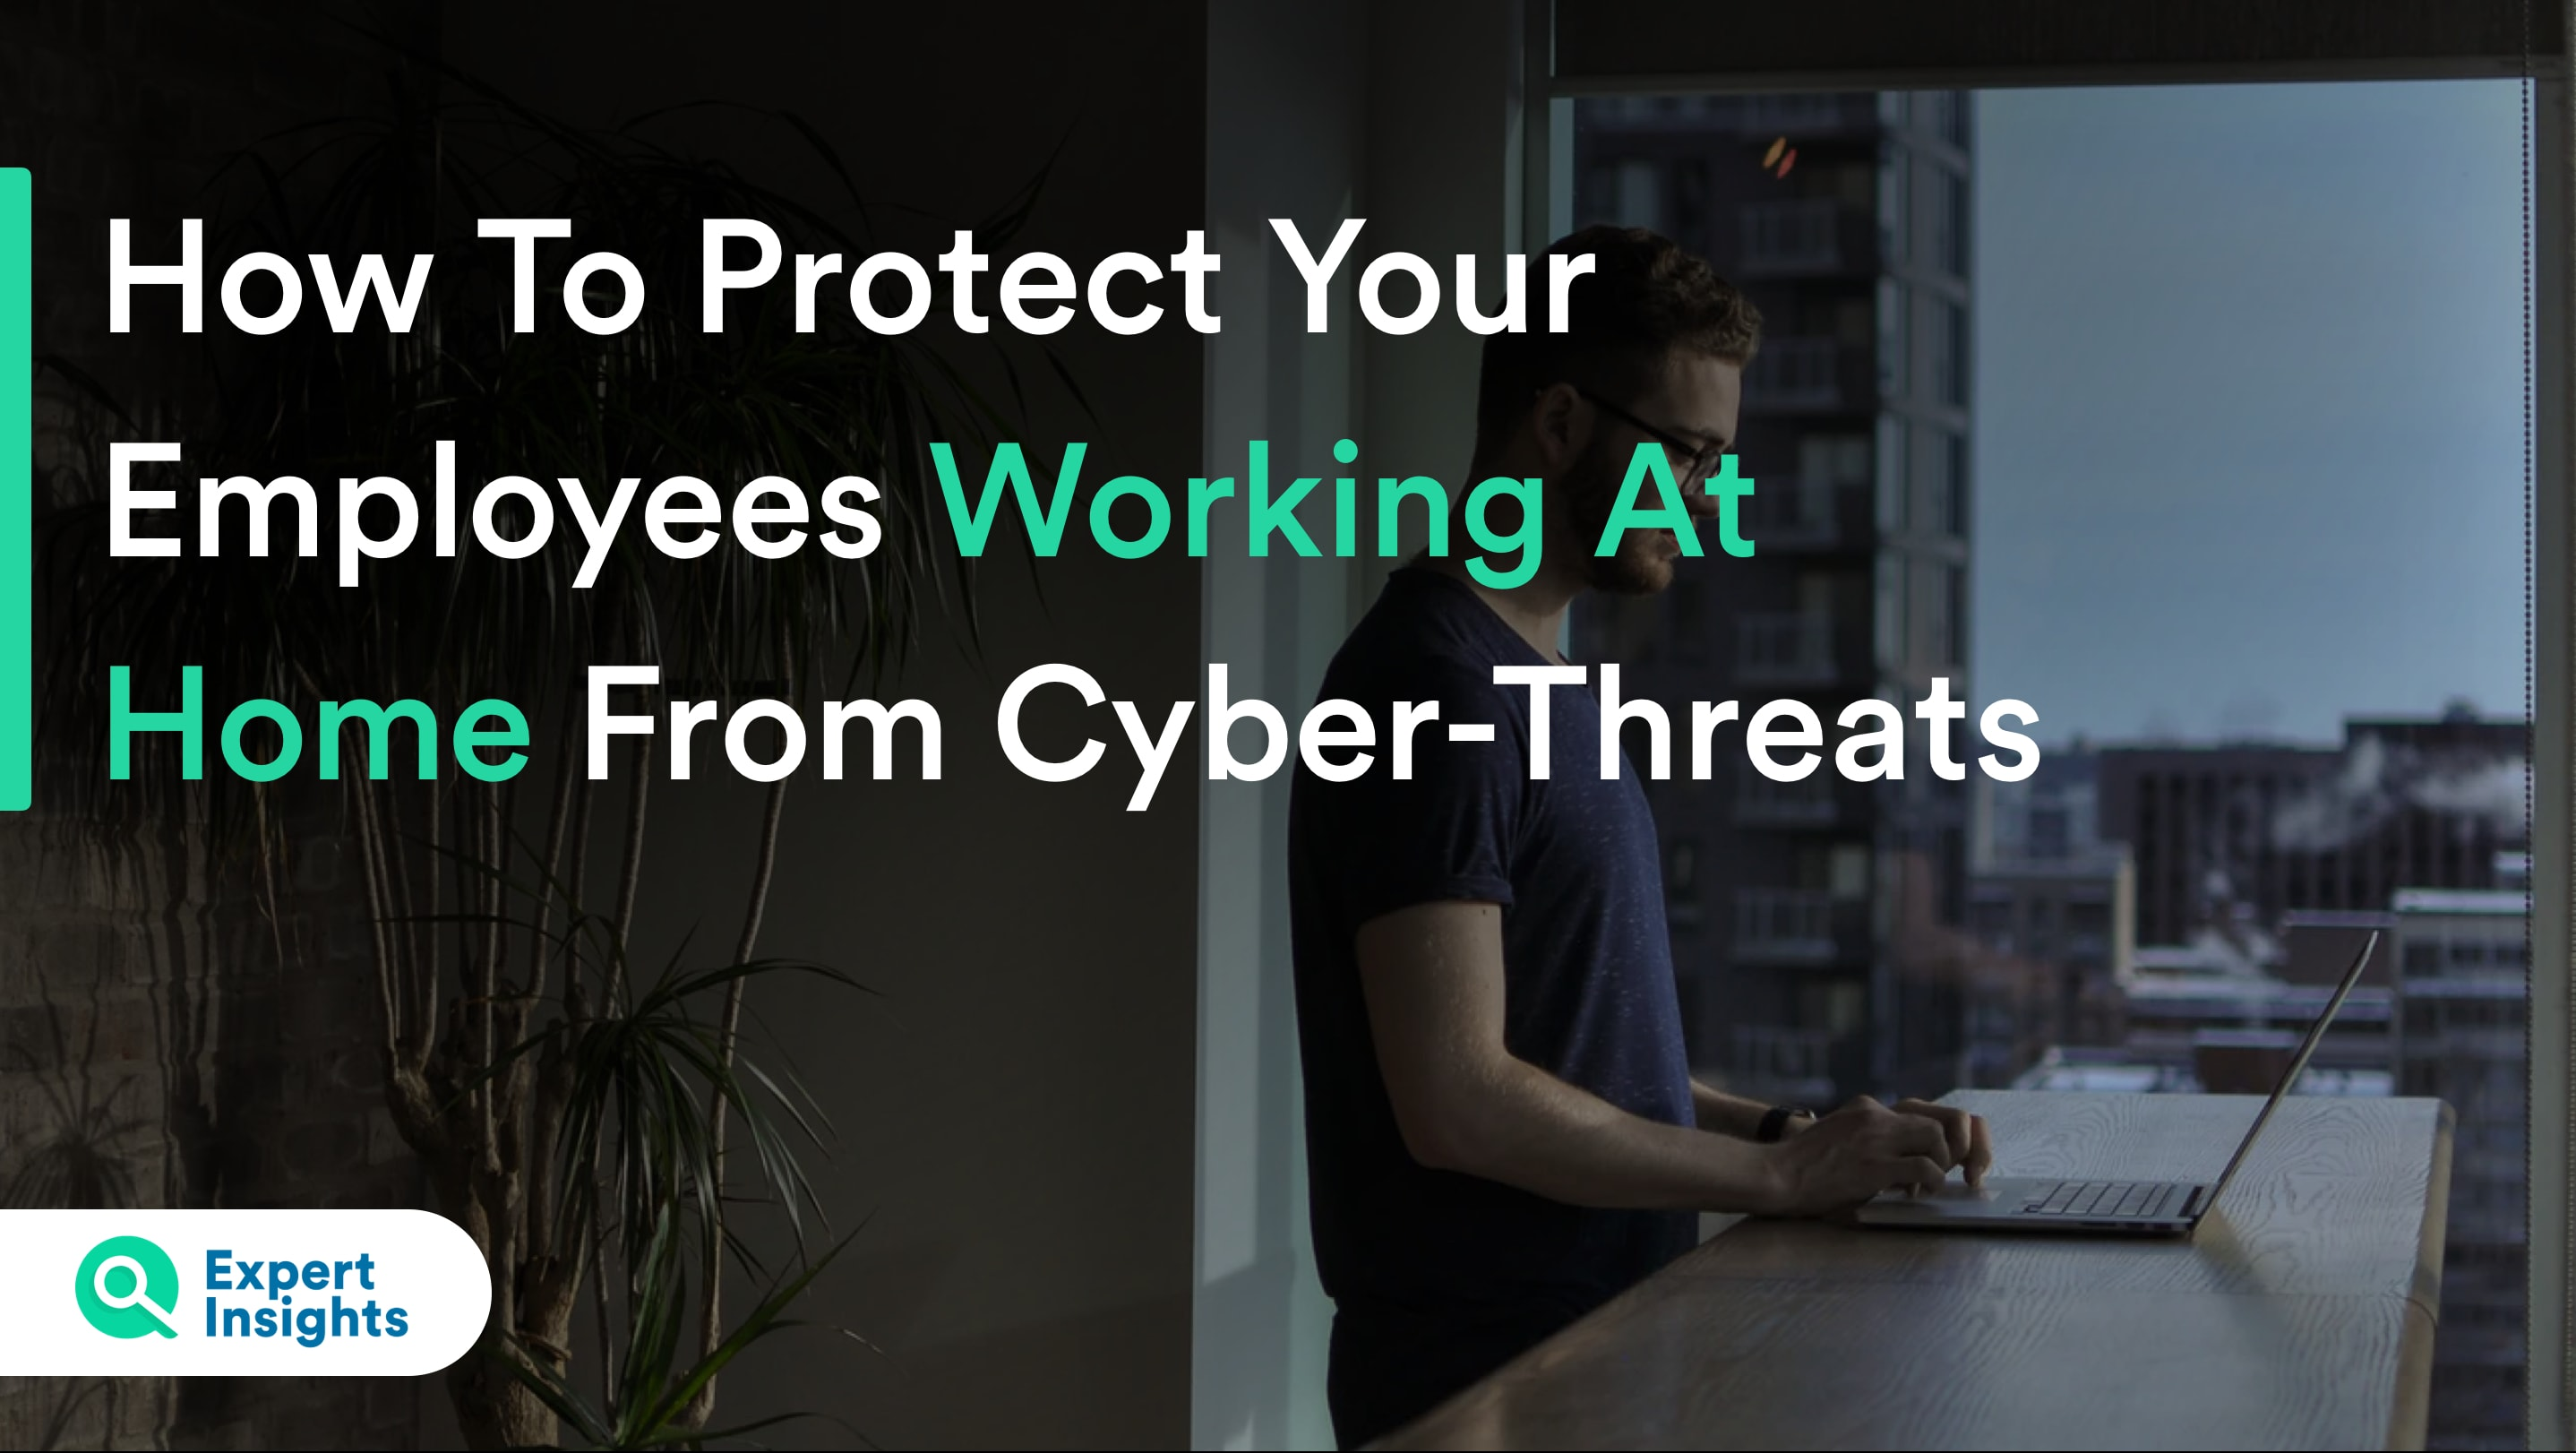 how to protect employees working at home from cyberthreats